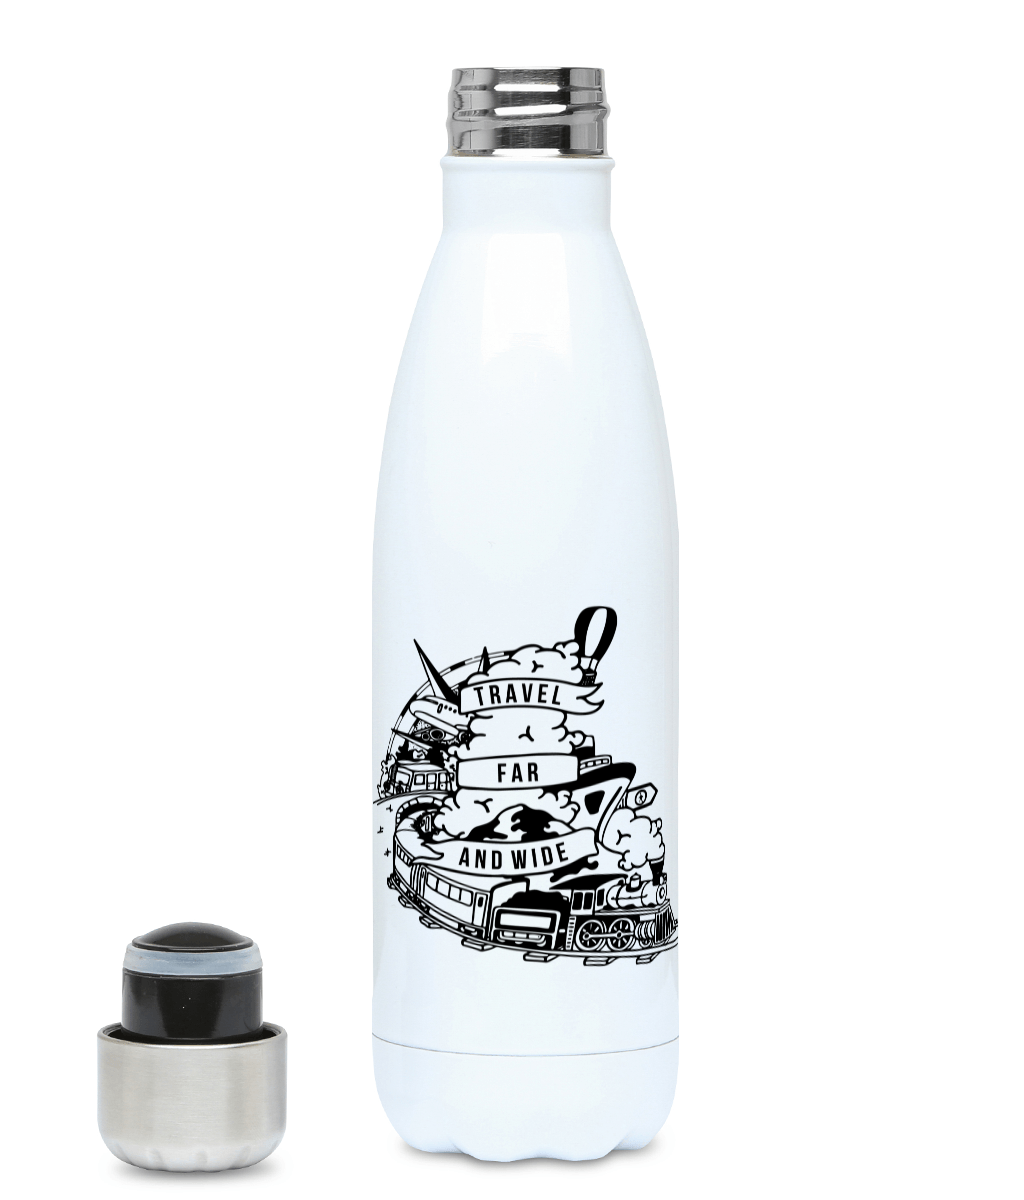 Travel Far And Wide - Plastic Free 500ml Water Bottle, Suggested Products, Pen and Ink Studios Adventure Clothing